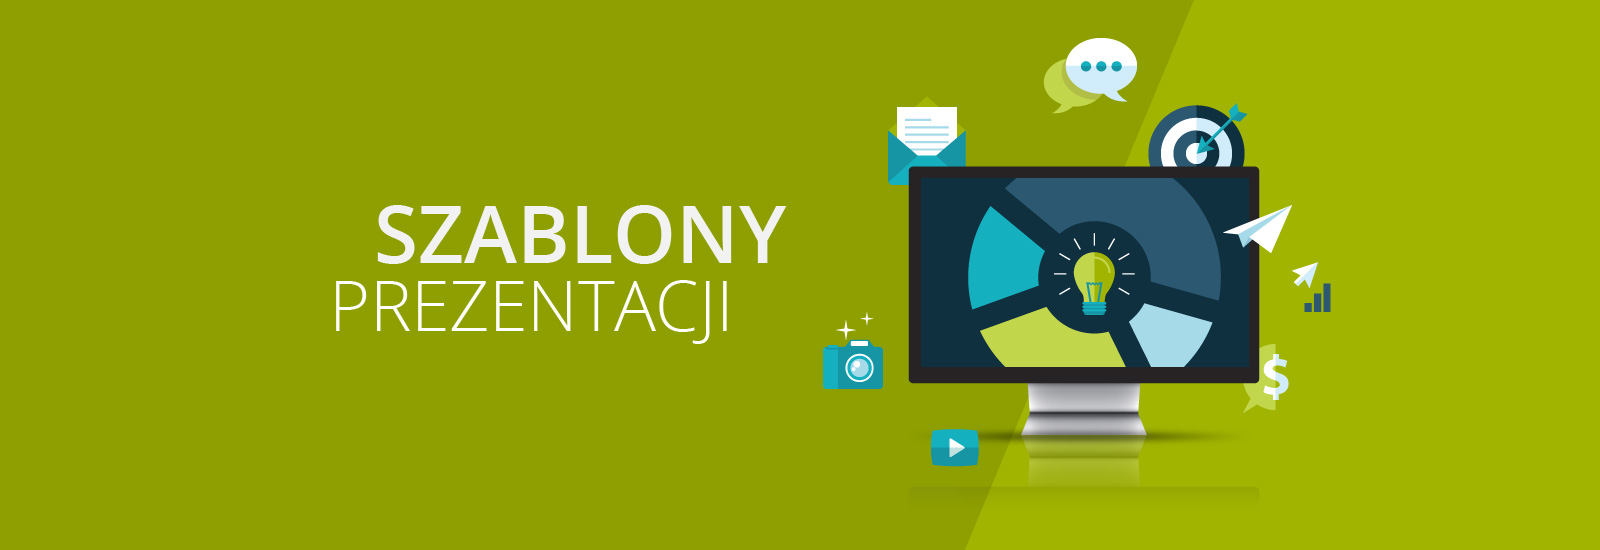 prezentacje flash, prezi, power point, slajdy, template